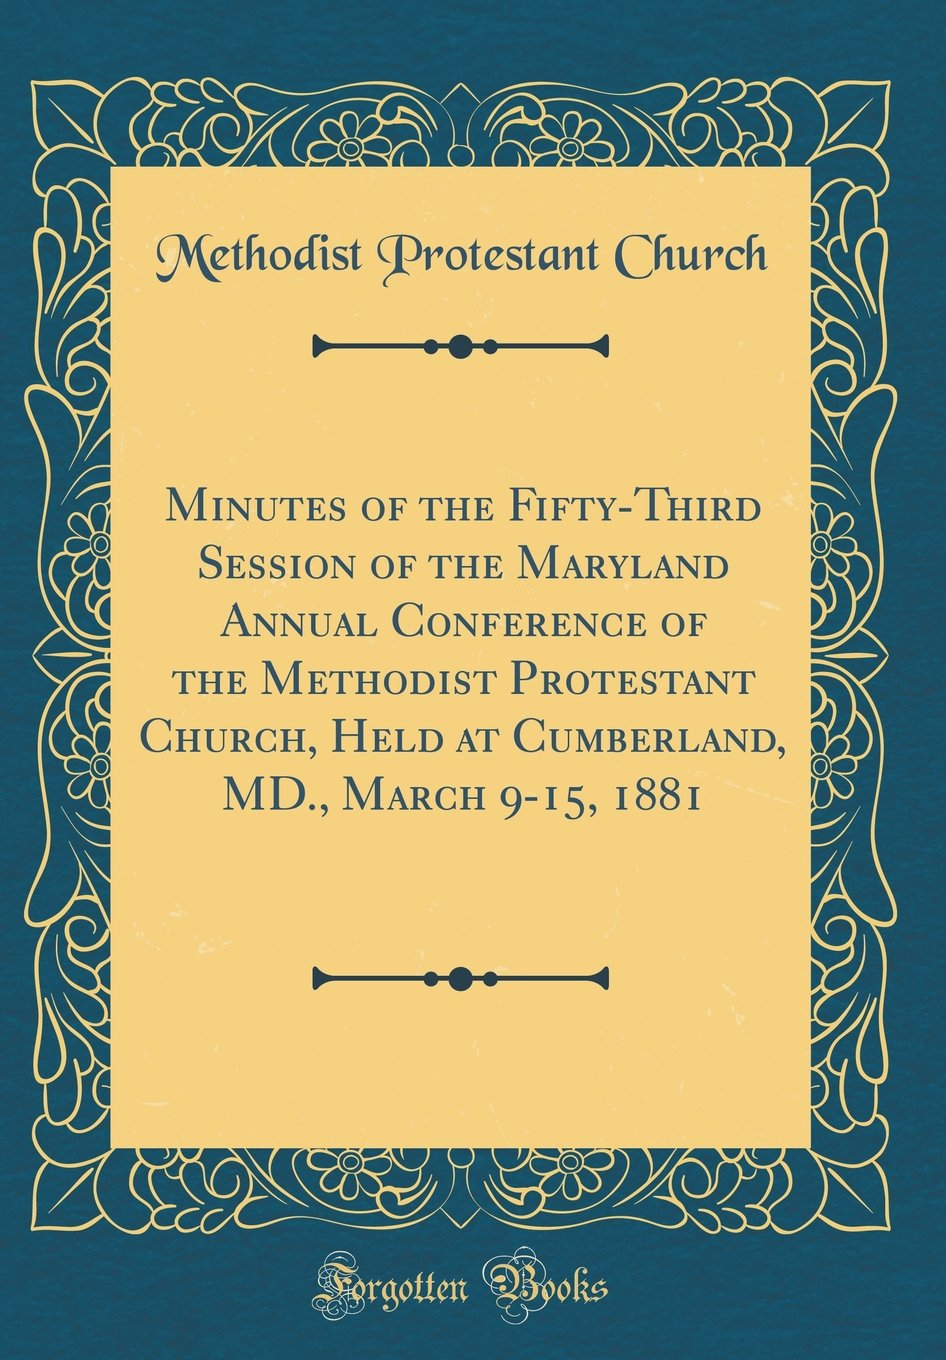 Minutes of the Fifty-Third Session of the Maryland Annual Conference of the Methodist Protestant Church, Held at Cumberland, MD., March 9-15, 1881 (Classic Reprint) PDF Text fb2 ebook